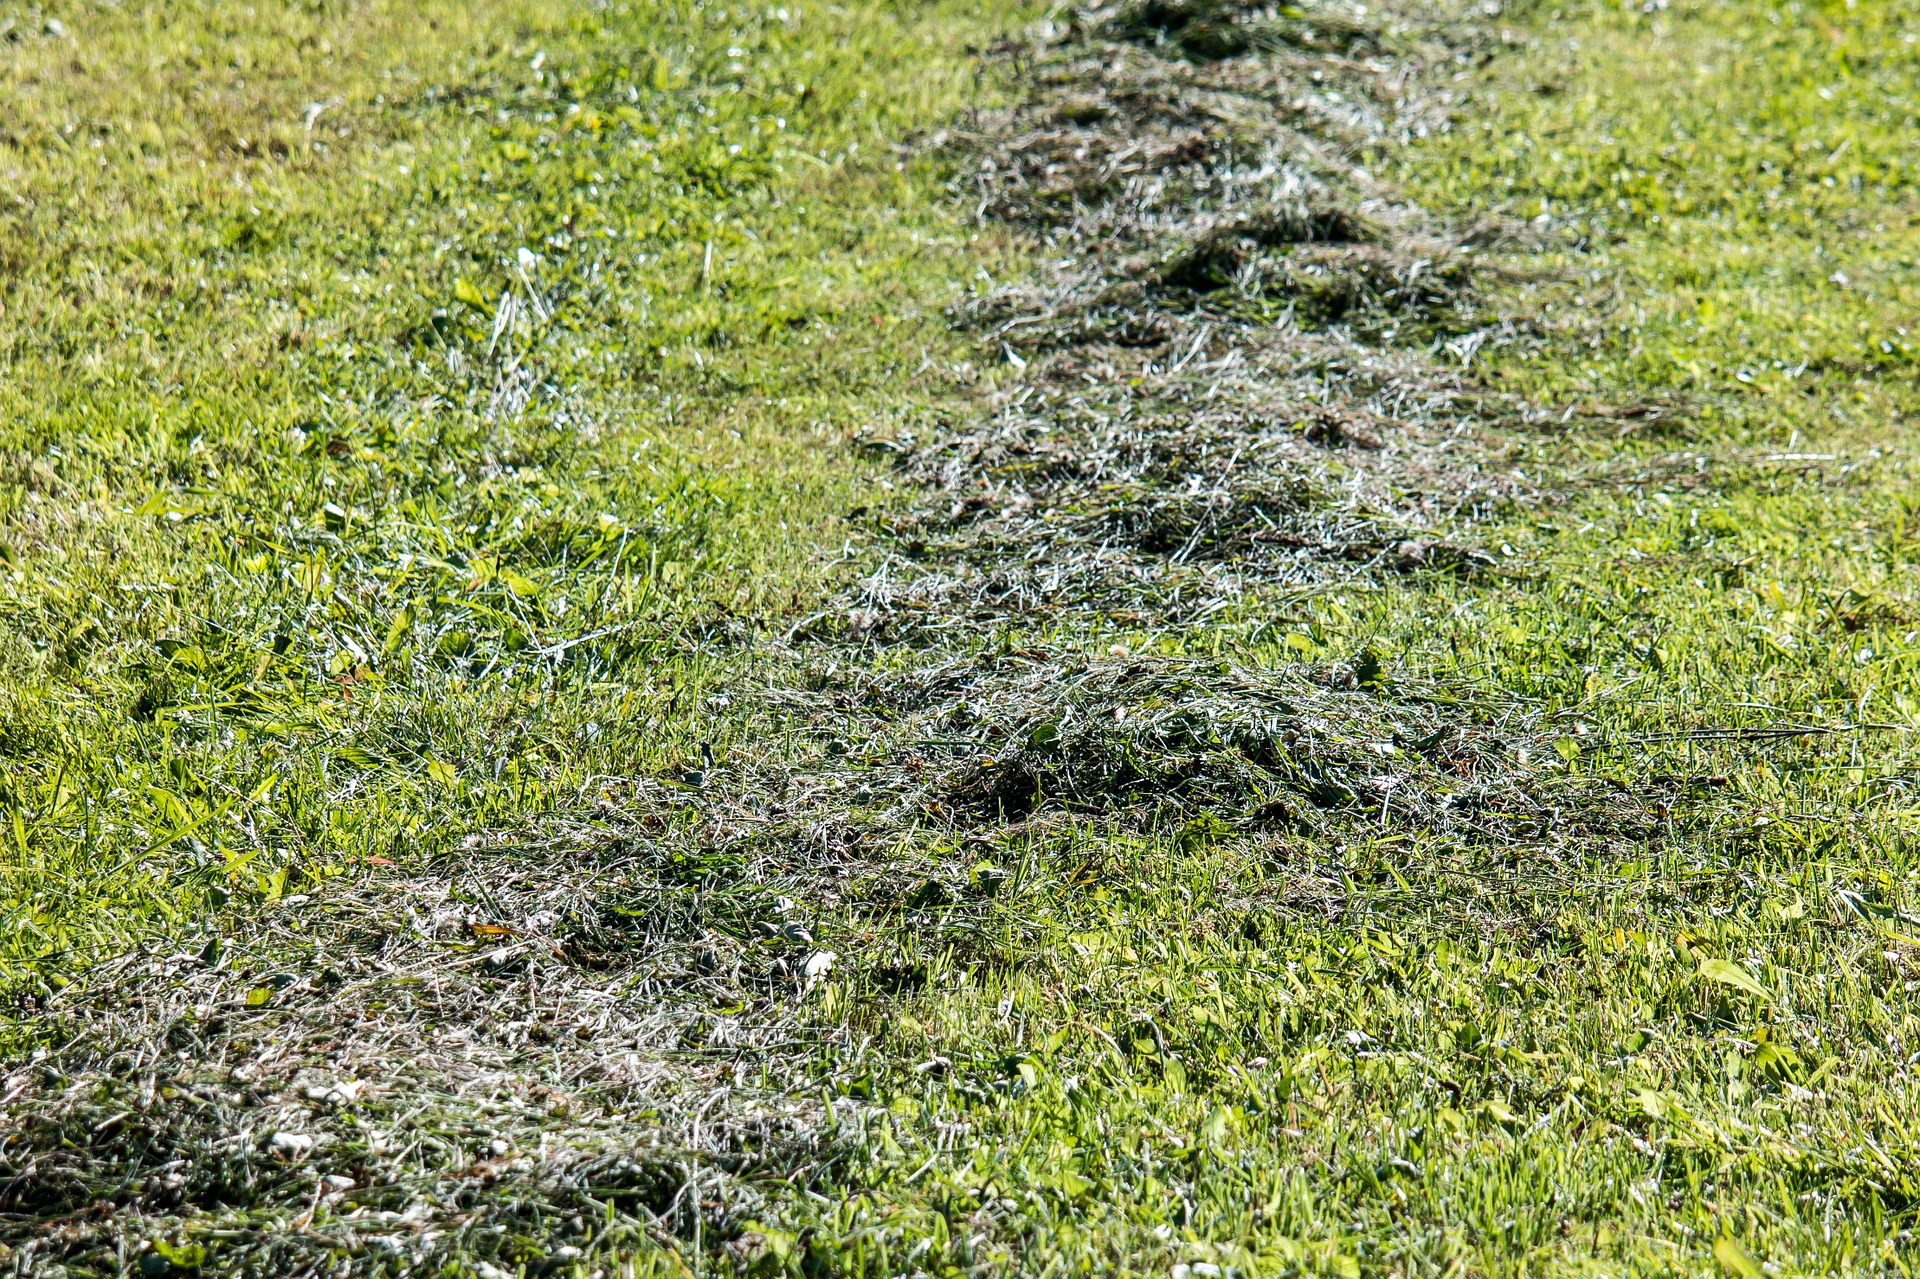 Lawn Clippings Clumping On Lawn